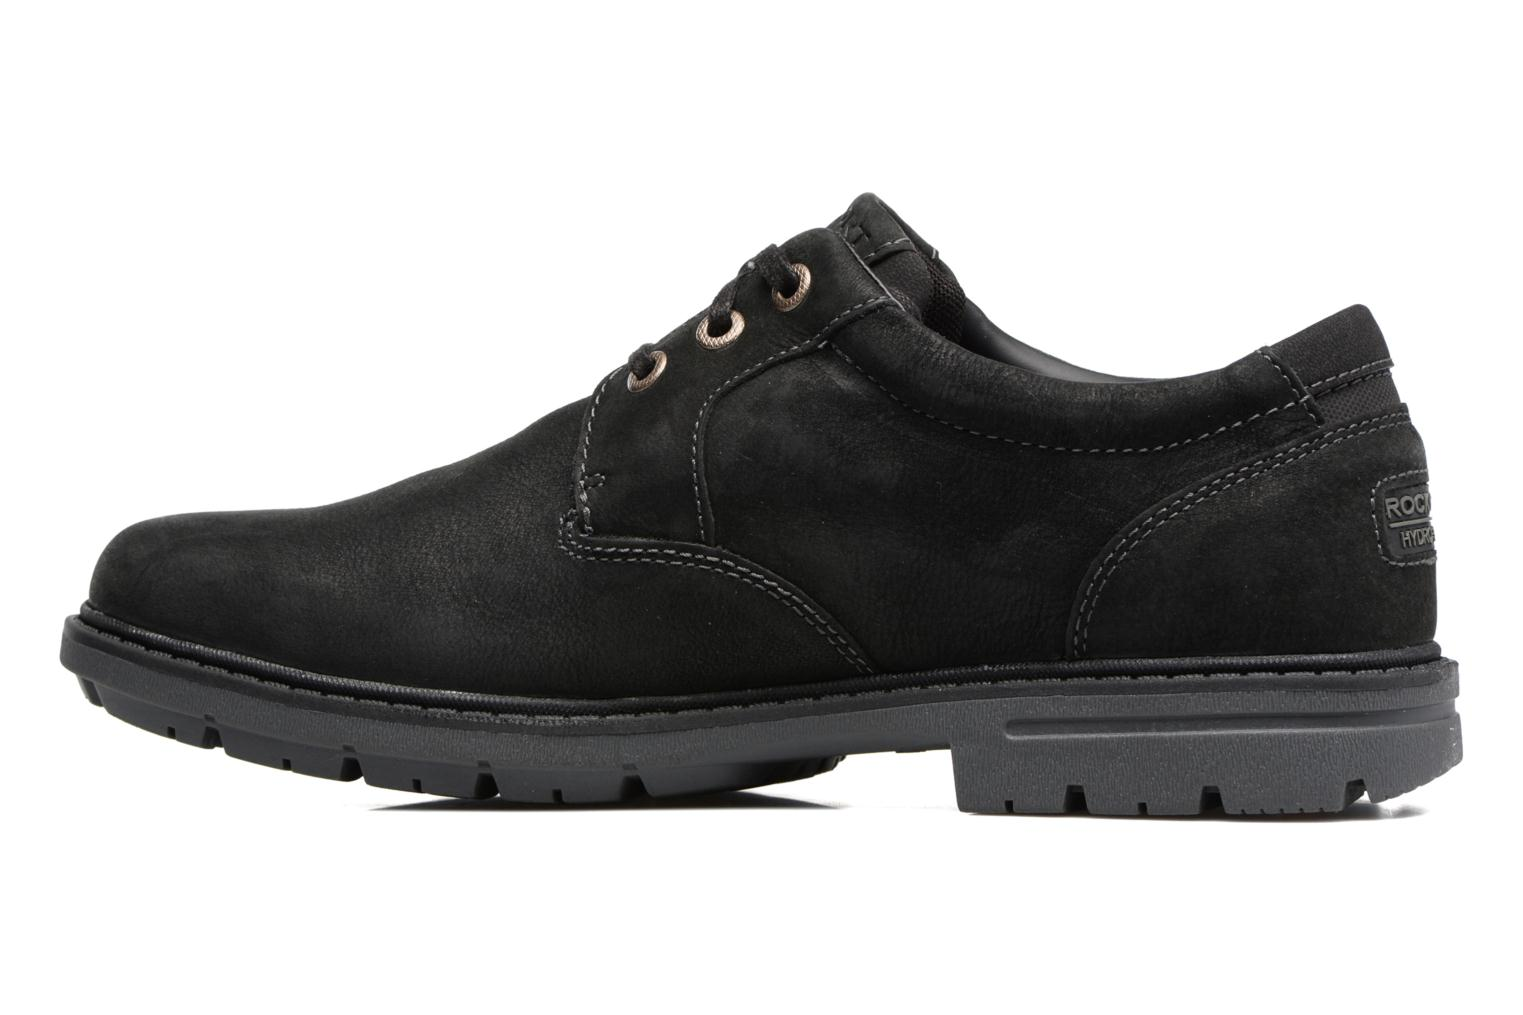 Chaussures à lacets Rockport Tough Bucks Pt Ox 2 Noir vue face